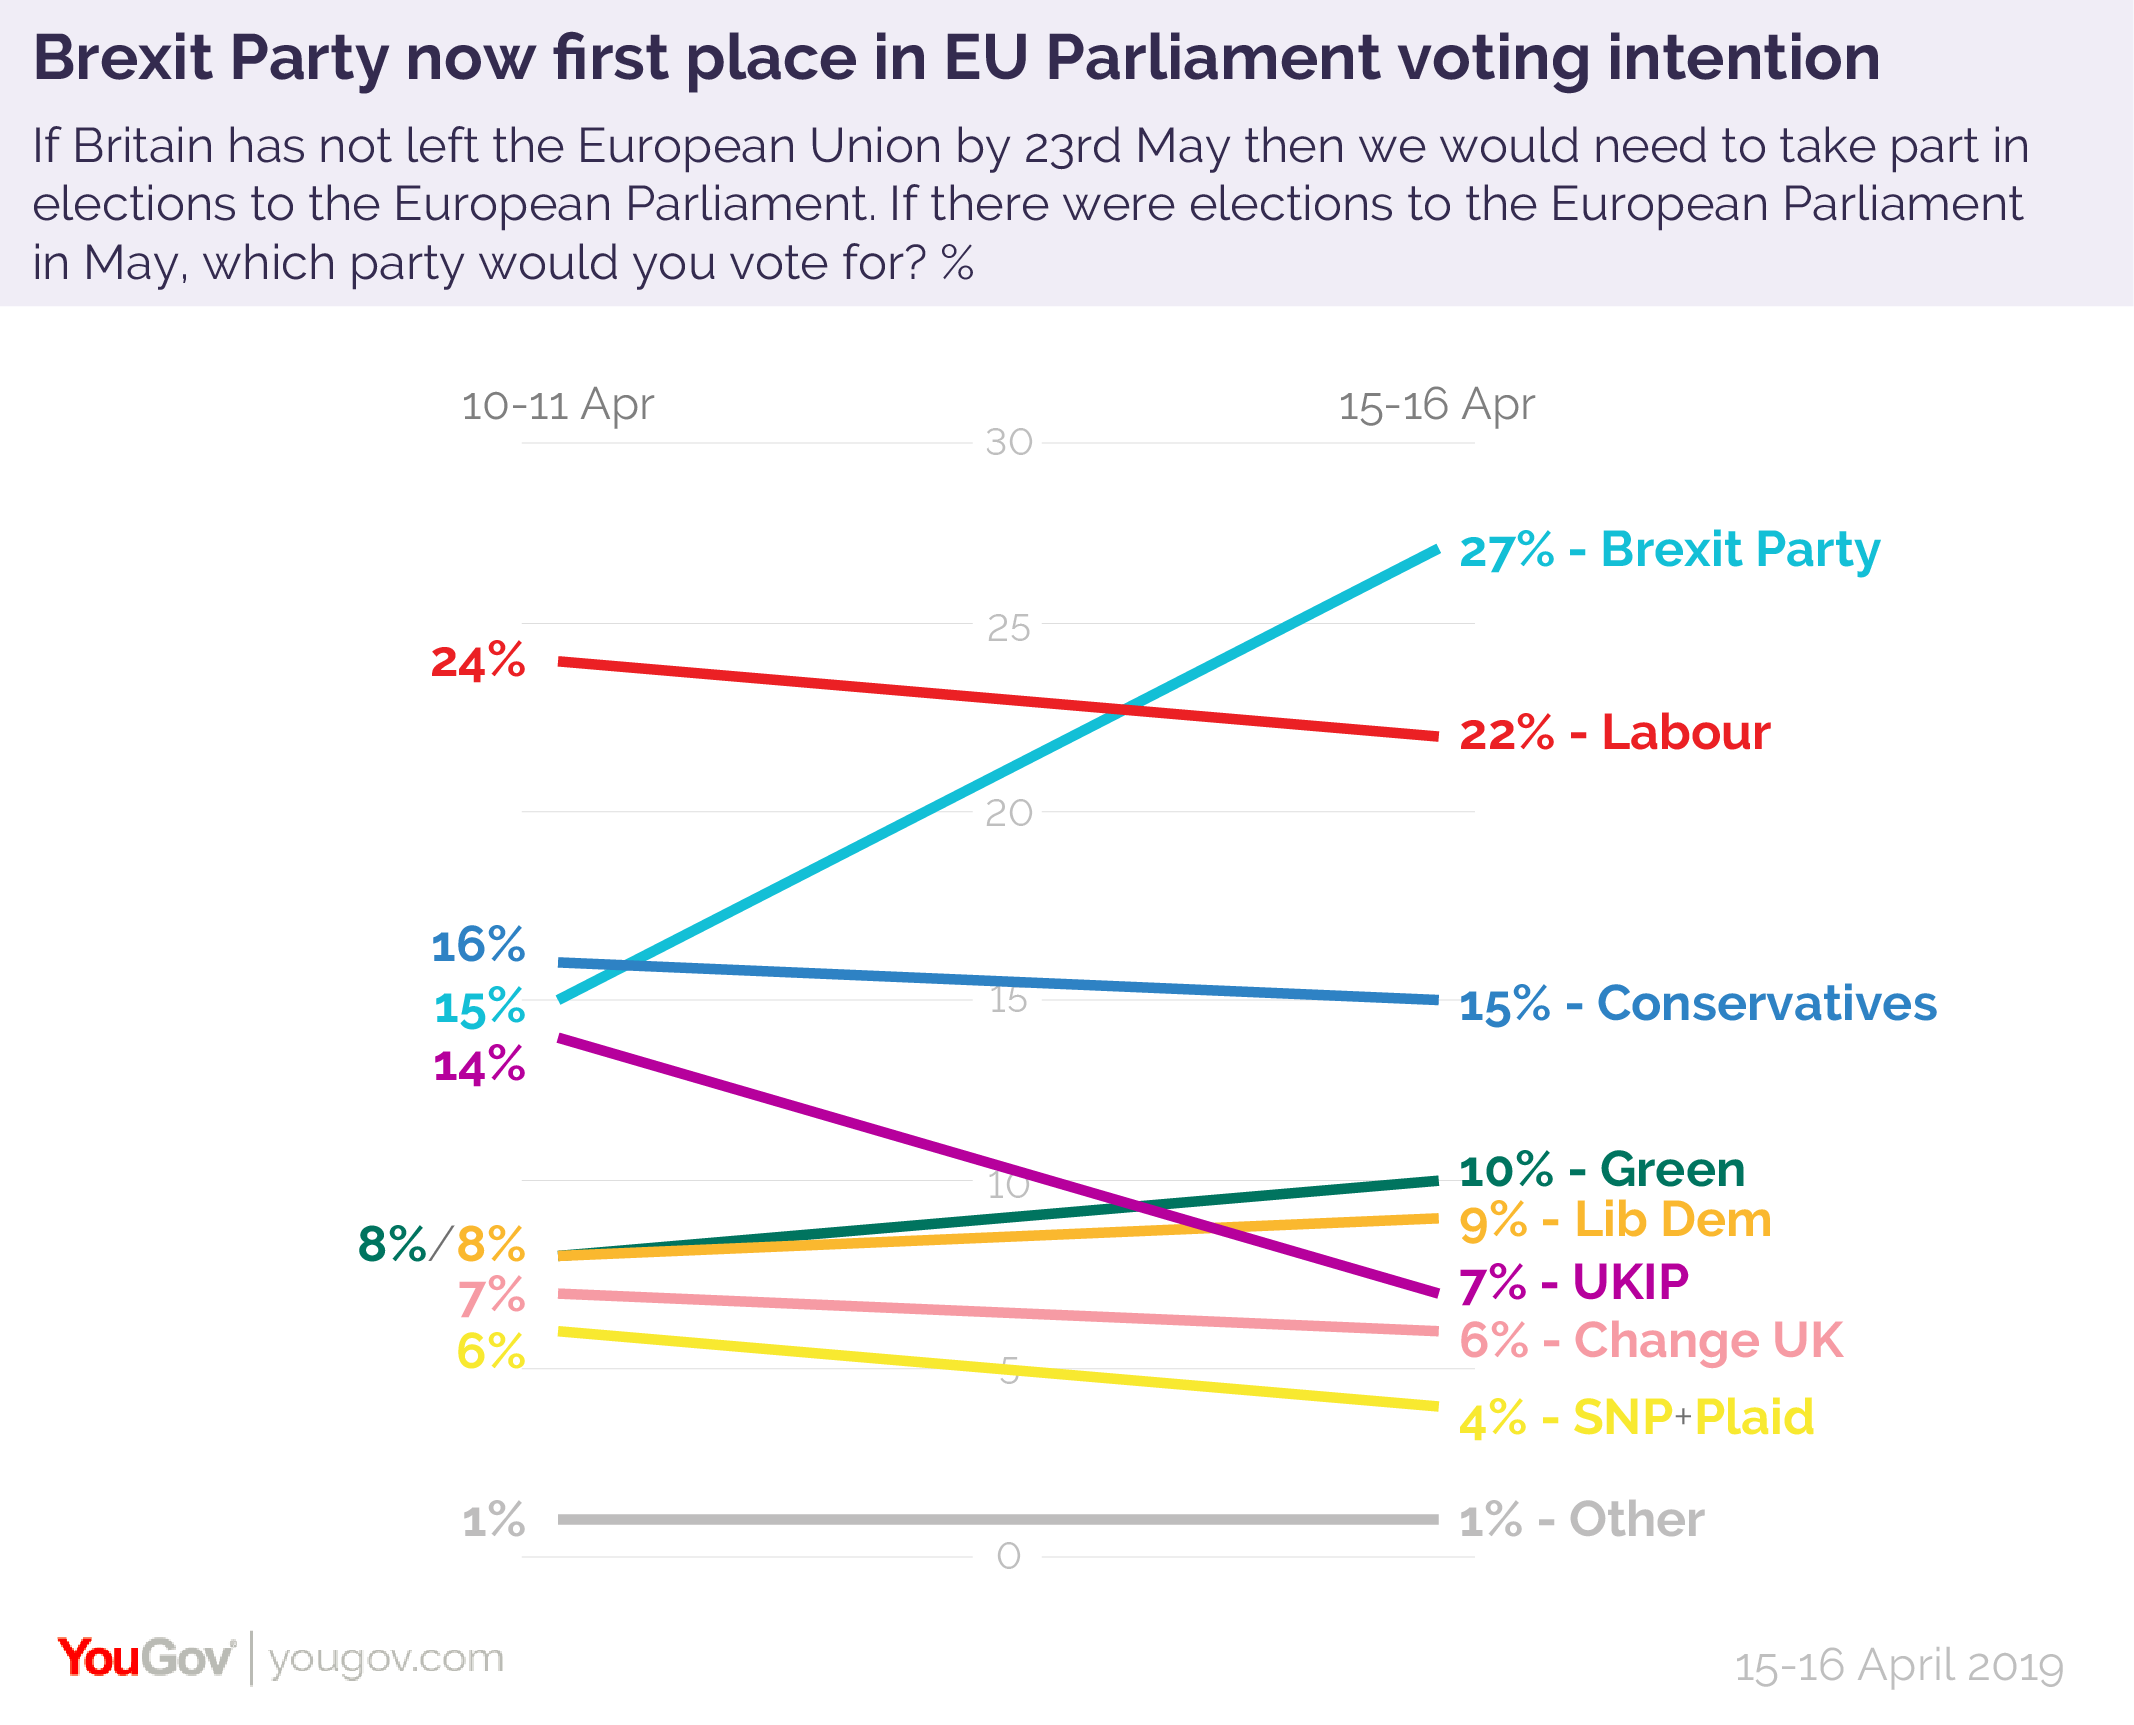 Brexit Party leading in EU Parliament polls | YouGov